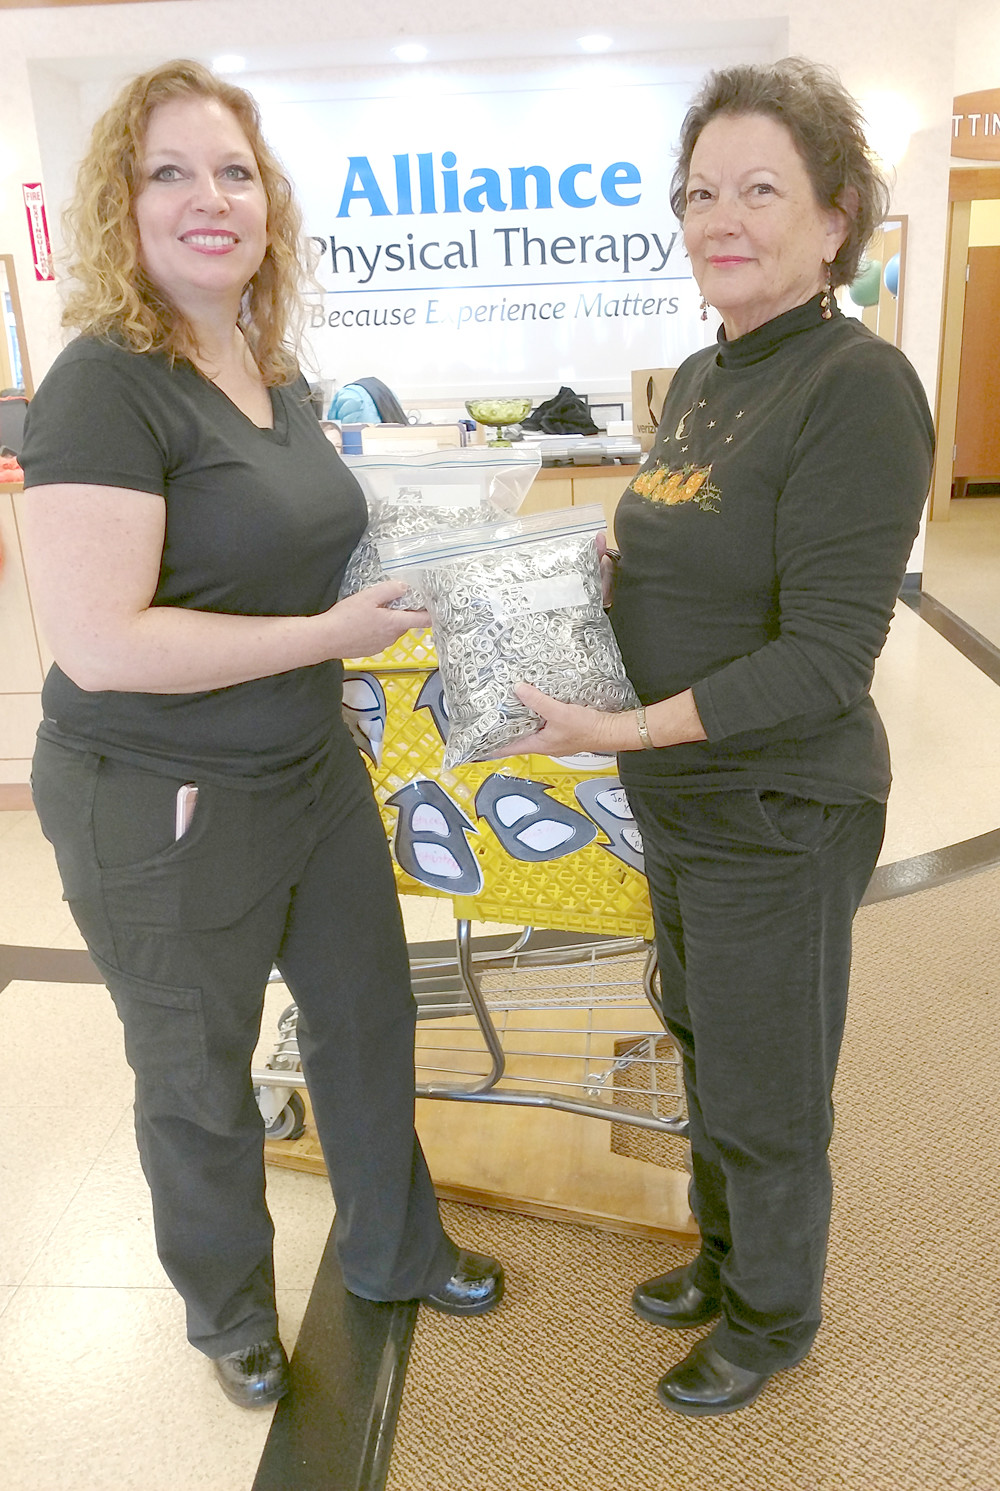 Dawn Morgan PT, DPT of Alliance Physical Therapy, accepts 69 ounces of pull tabs from Brenda Derryberry of the Prospectors Family and Community Education Club for the Ronald McDonald House in Chattanooga. Recently, Alliance Physical Service delivered more than 40 pounds of pull tabs and encourages the community to continue making donations at their convenient location at 283 Paul Huff Parkway N.W. in Cleveland. At this time they are also collecting new and unwrapped Toys for Tots as another community project.